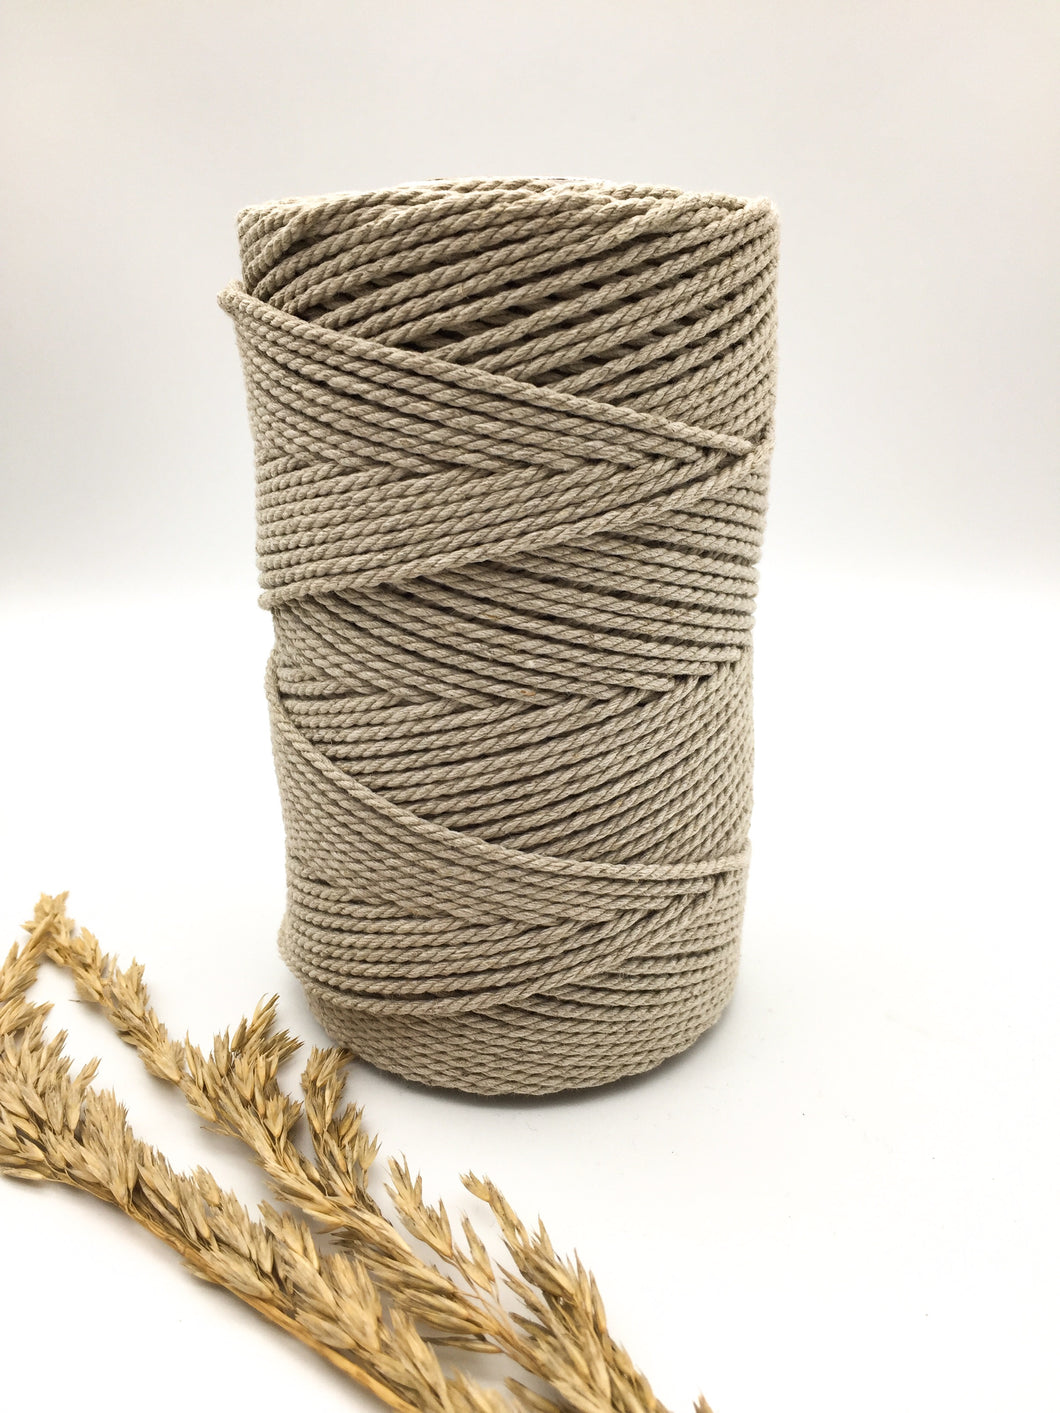 2.5mm LINEN MIX twisted rope